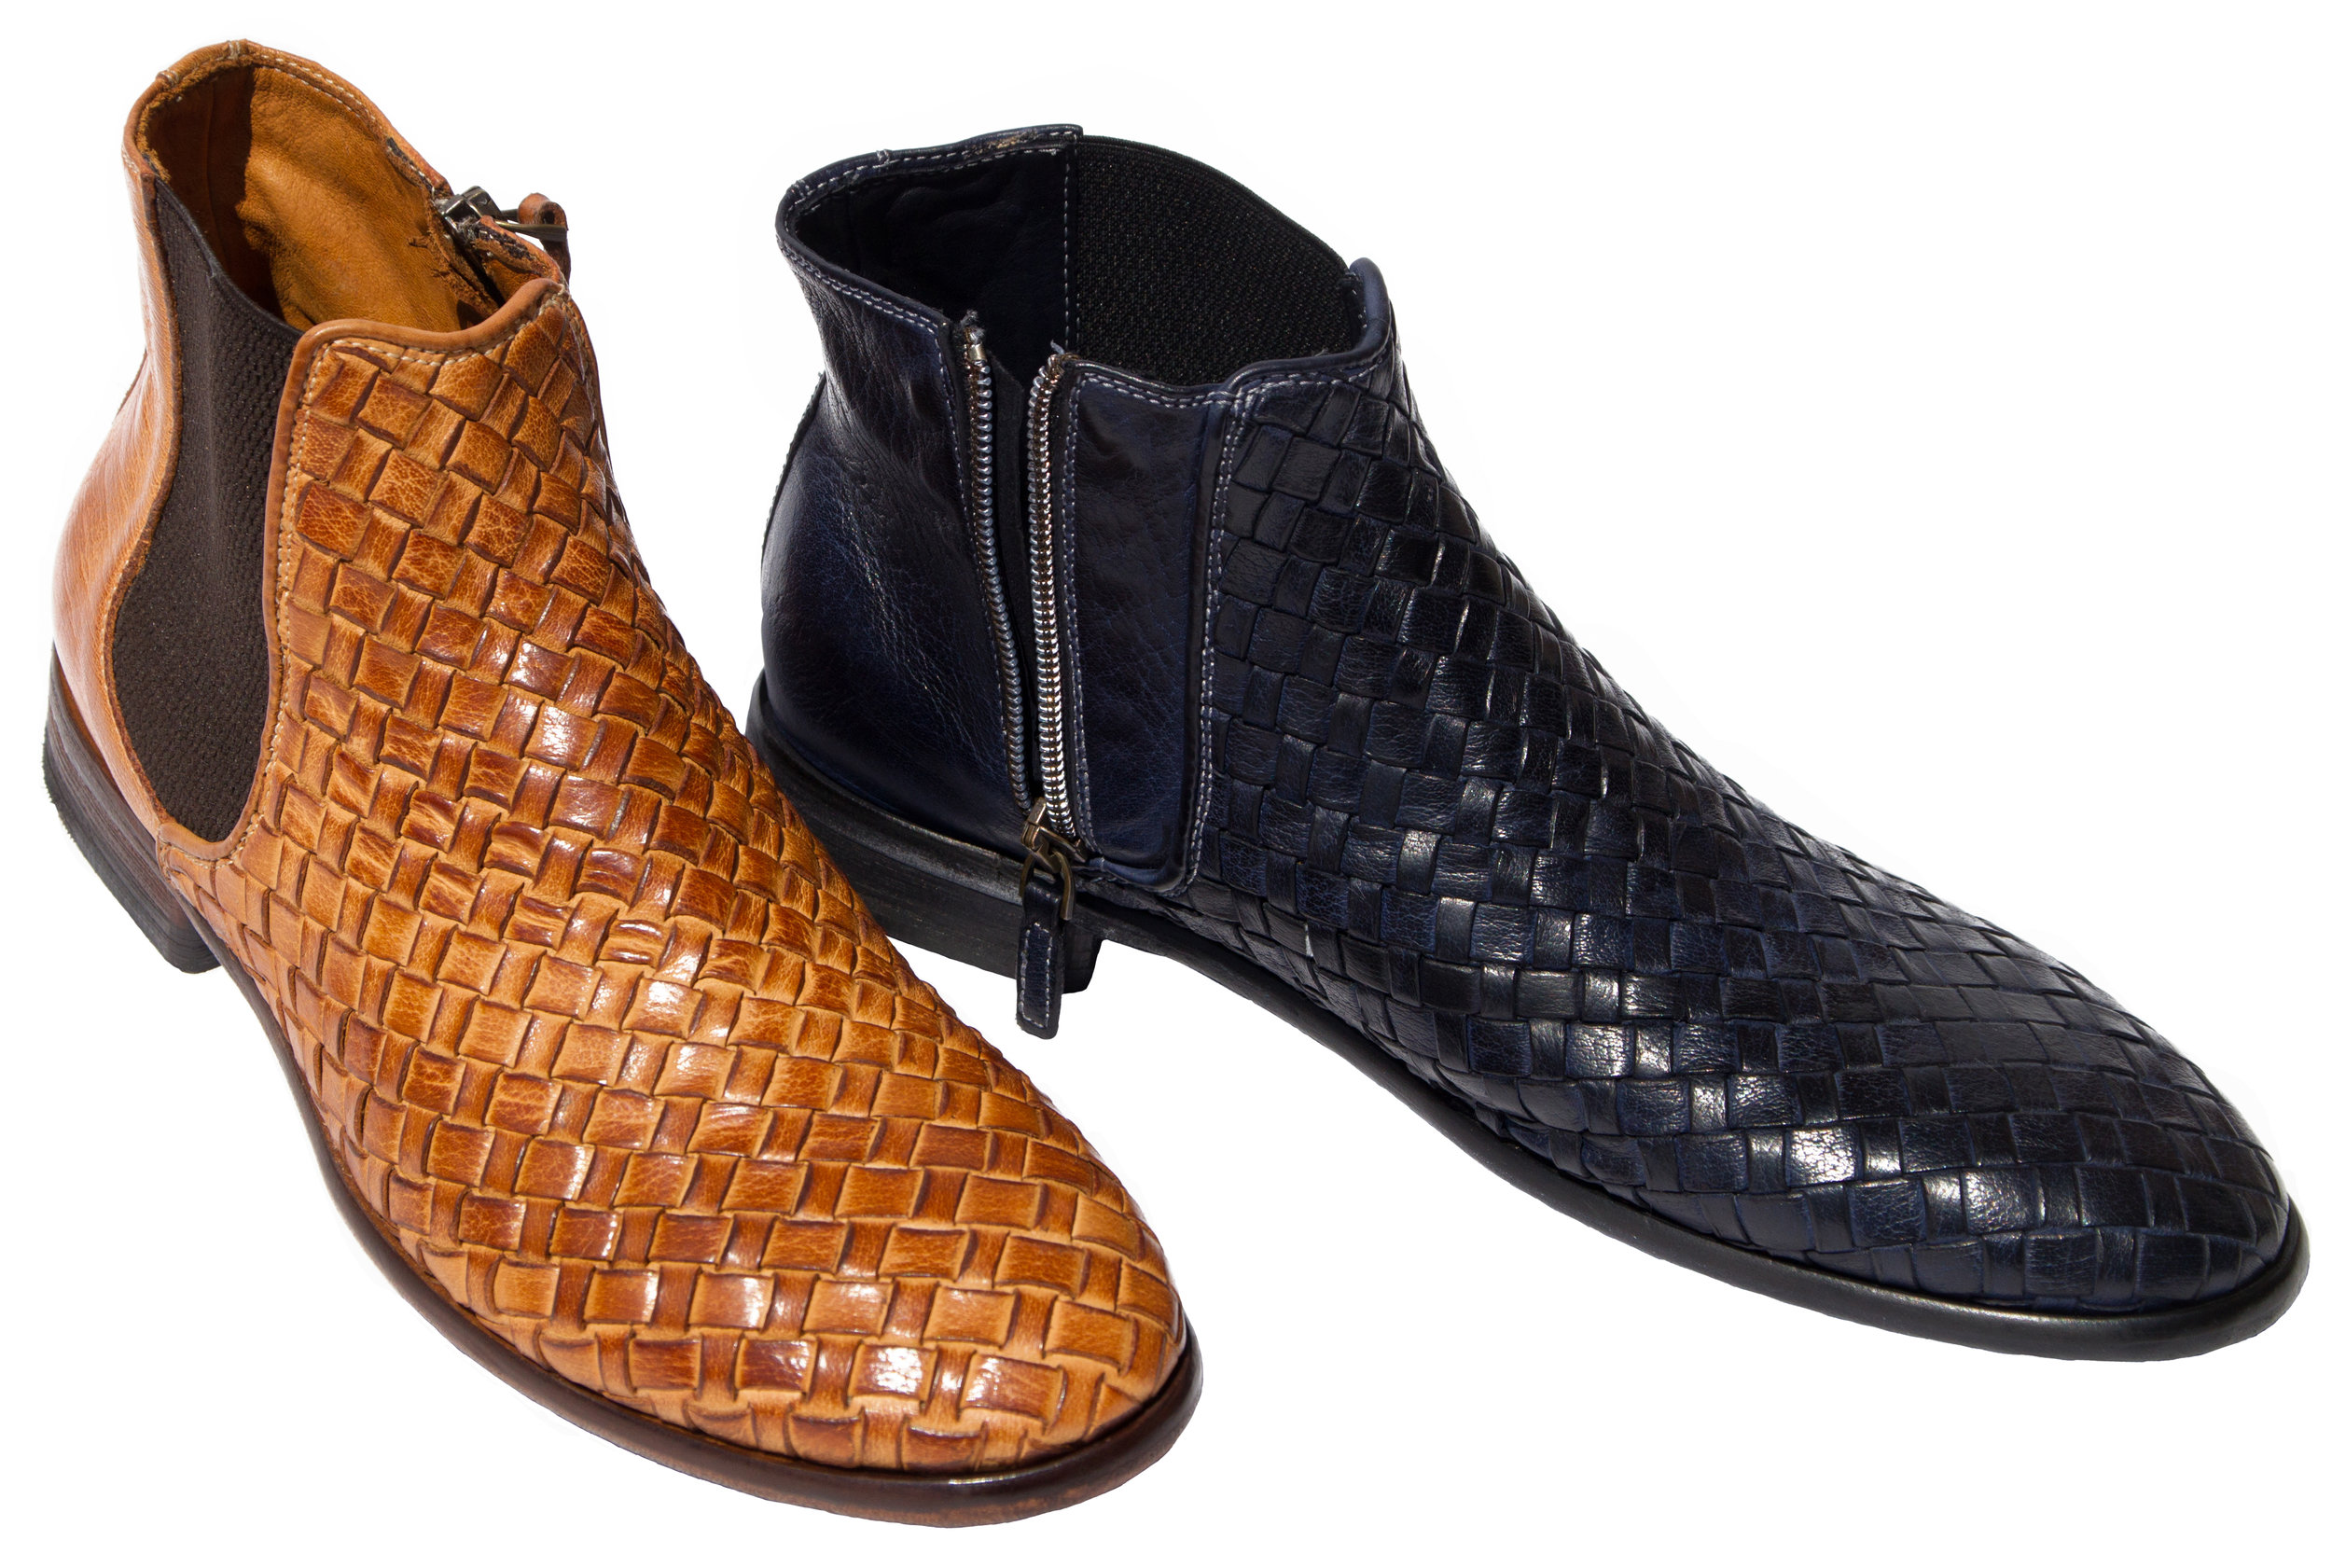 Style # H705: Brick, Navy Blue  Dip-Dyed Buffcalf Woven Chelsea Boot featuring a side zipper   Sizes available: 40 to 47 EU, including half sizes